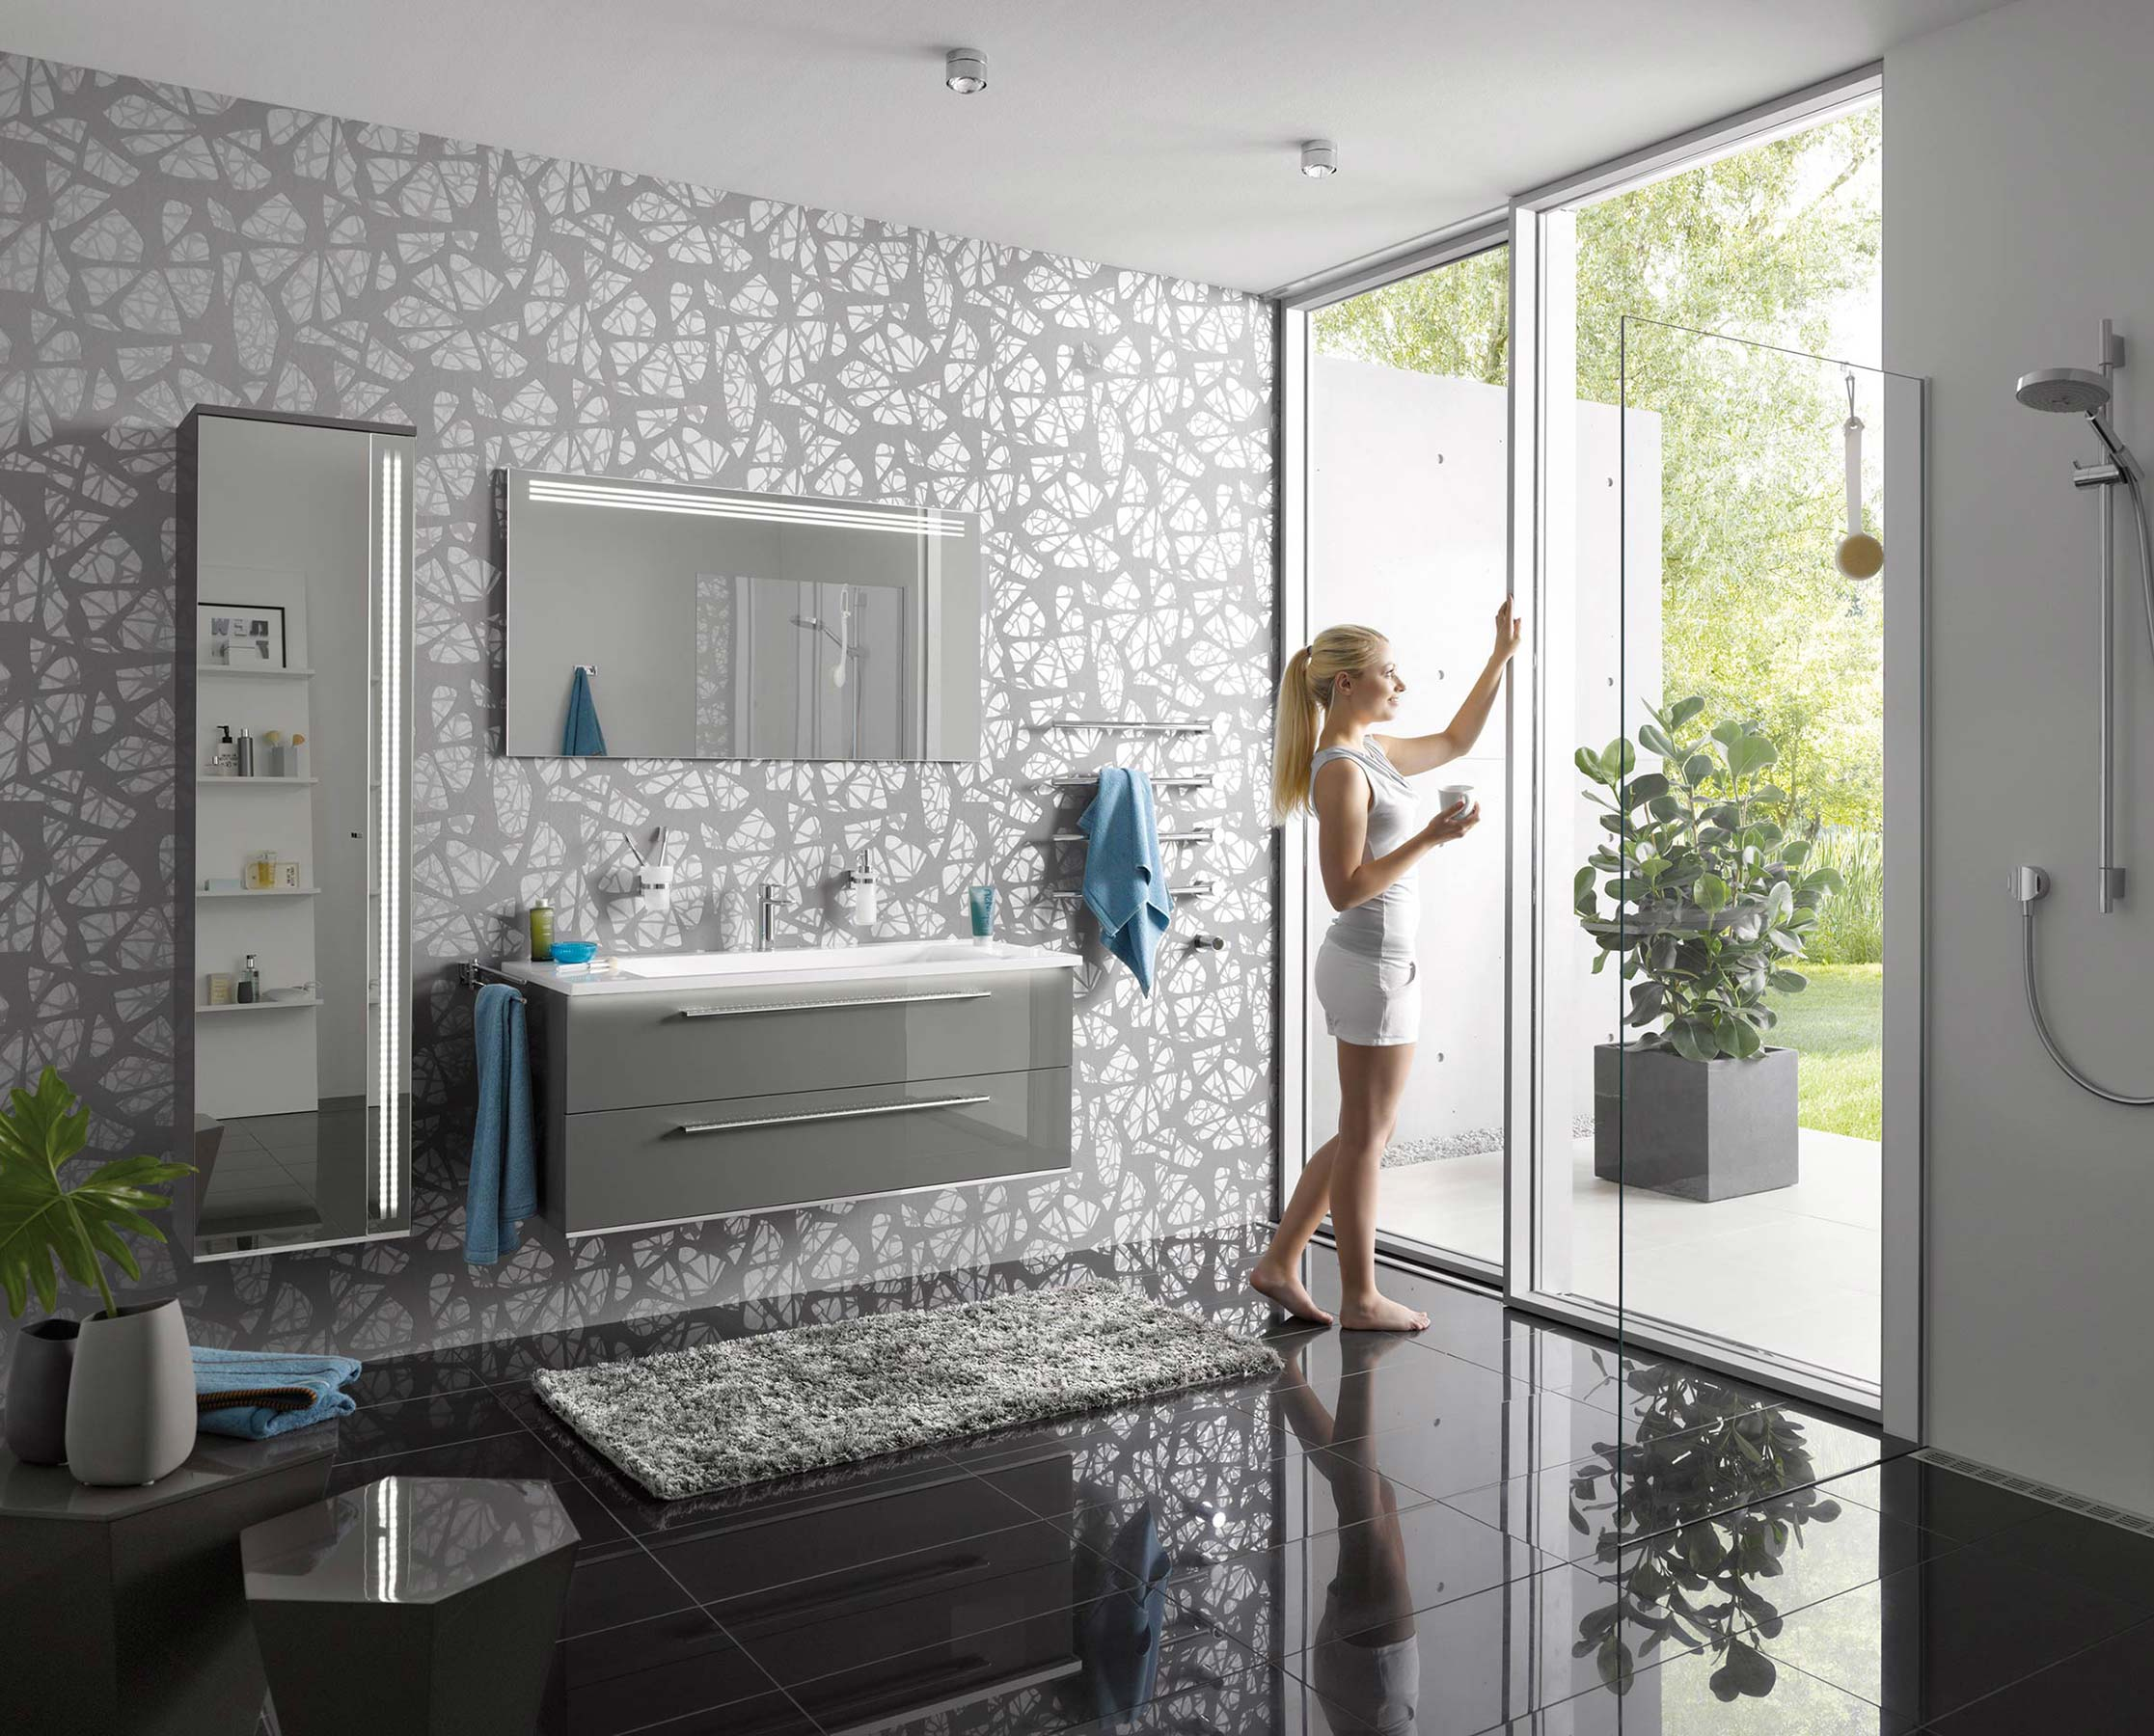 Badezimmer B-maxx B Collection De Bclassy